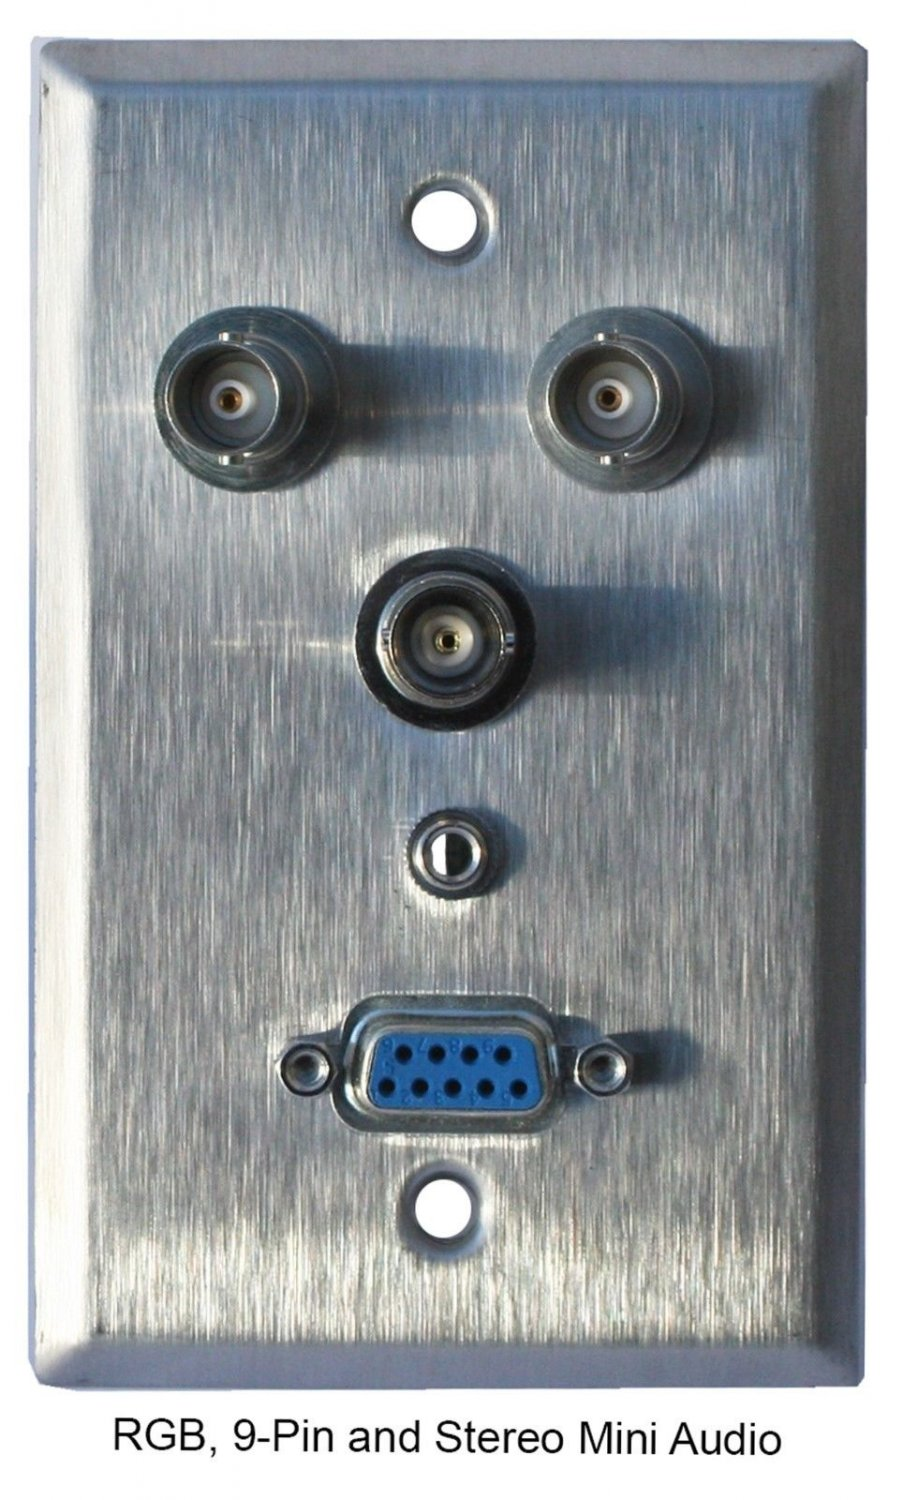 Wallplate with RGB BNC, 9-pin, ST mini Audio - Single Gang Wallplate, stainless